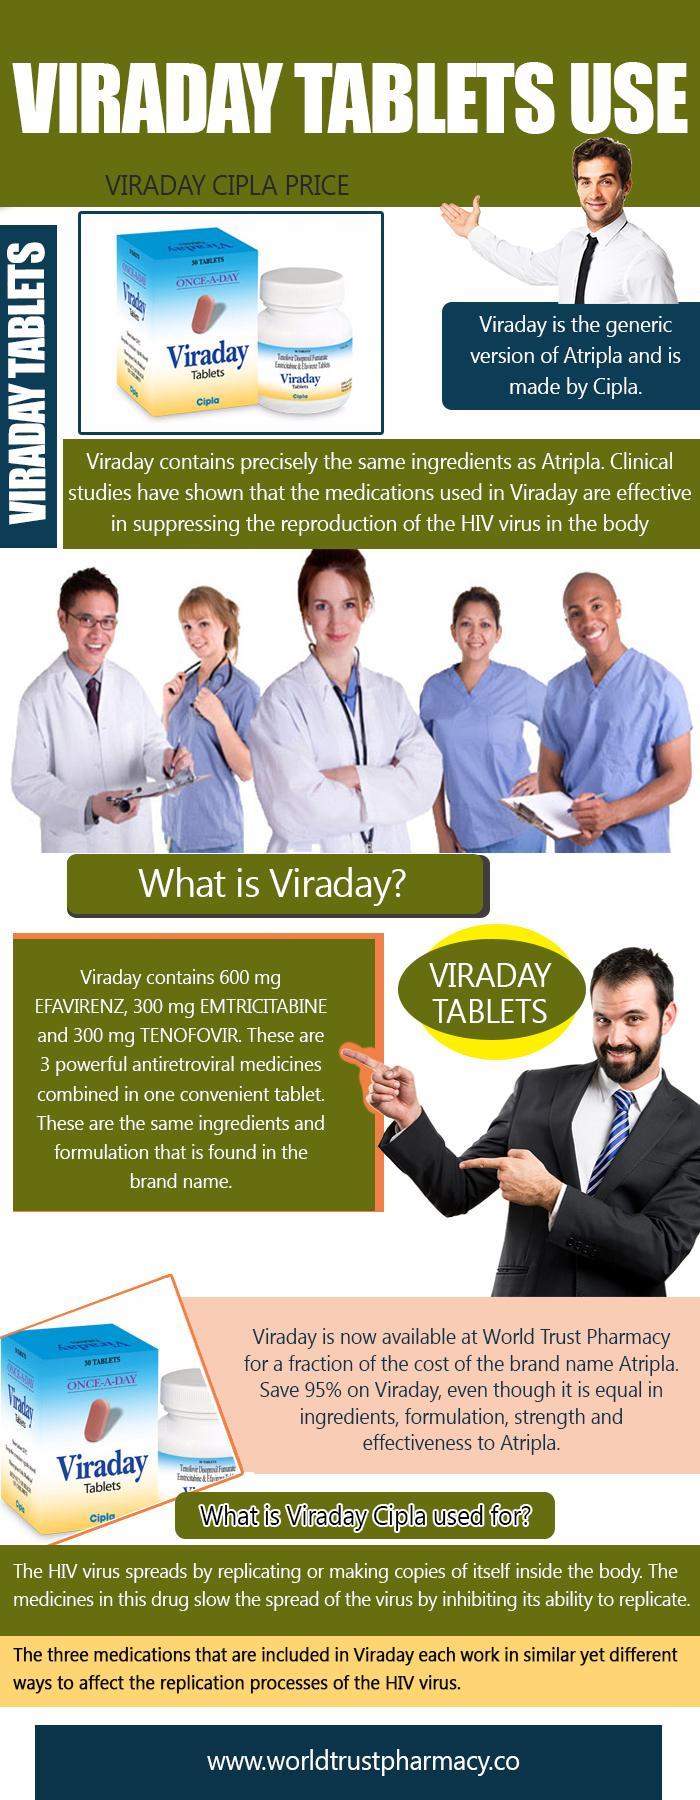 Viraday Cipla Price